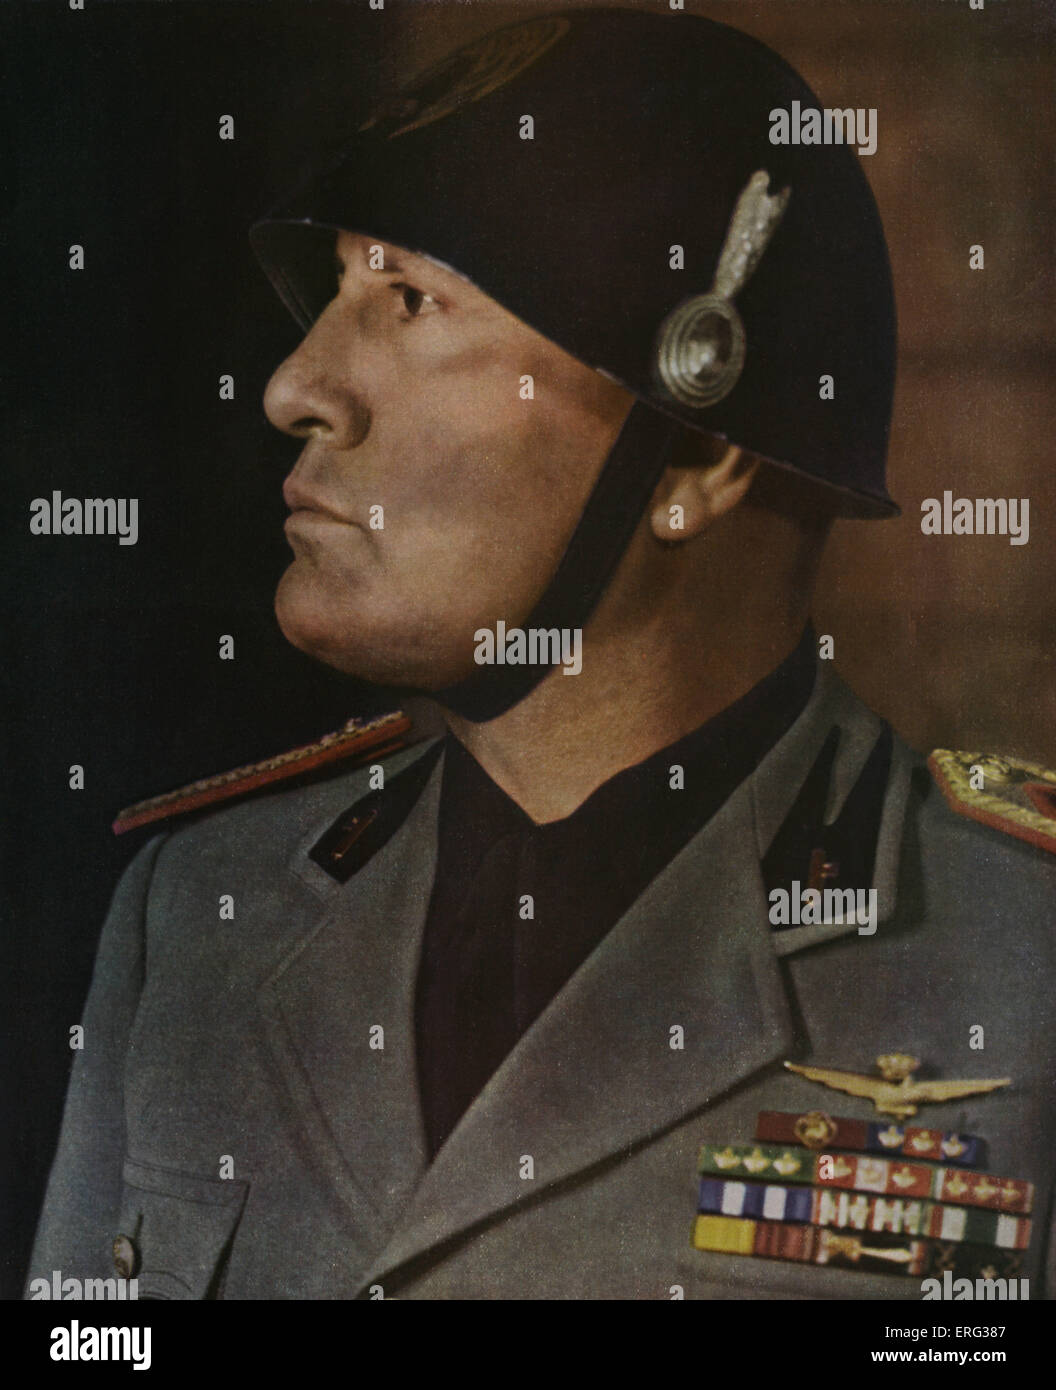 benito mussolini aka il dulce Download this stock image: portrait of benito mussolini aka 'il duce' italian fascist dictator - d8yr7d from alamy's library of millions of high resolution stock photos, illustrations and vectors.